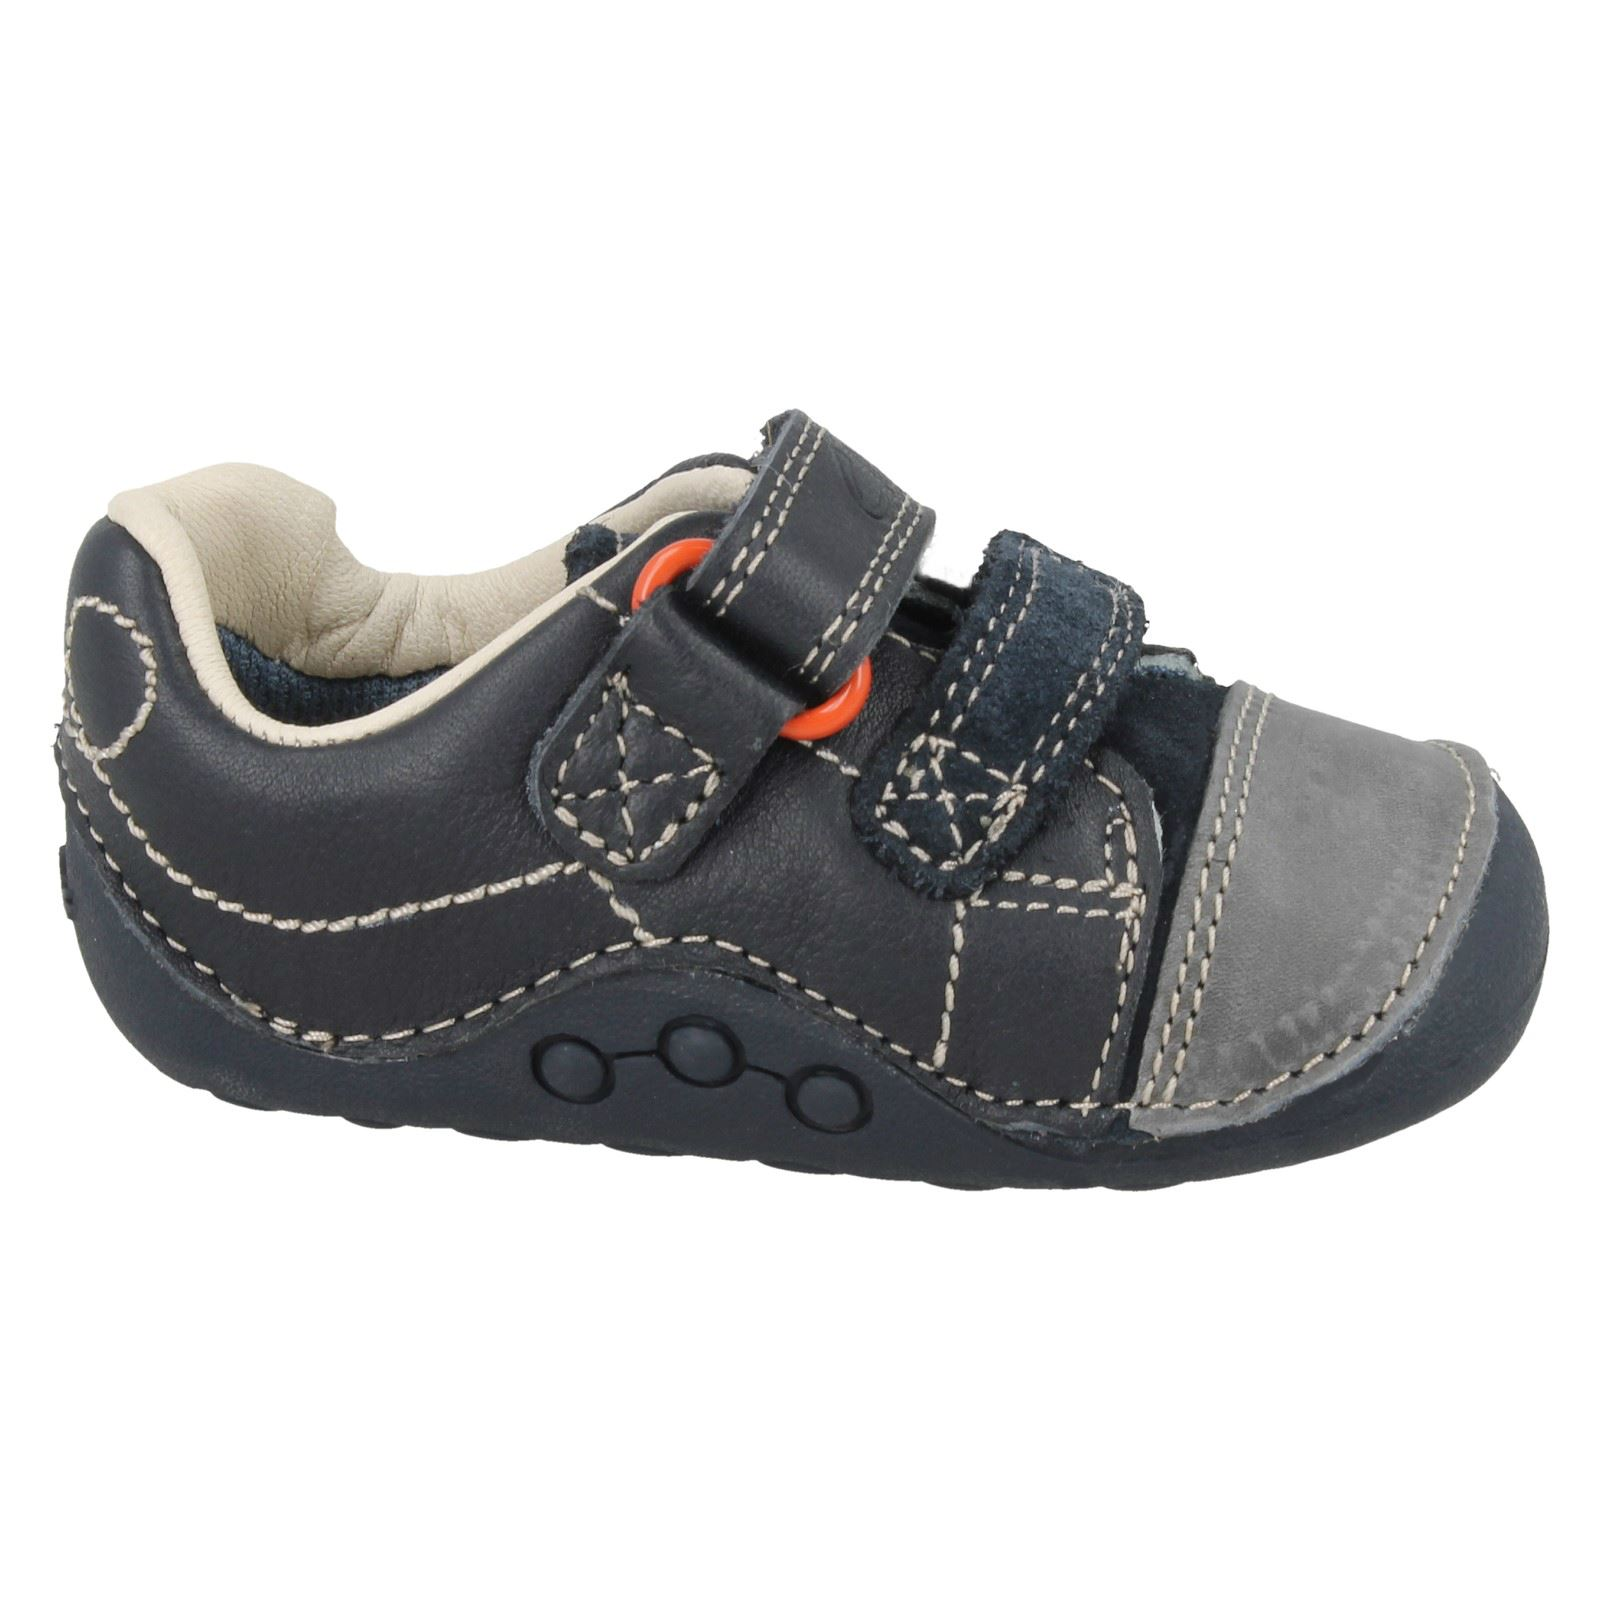 Clarks Tiny Jet- Boy's Cruising Shoe in Navy Leather Navy